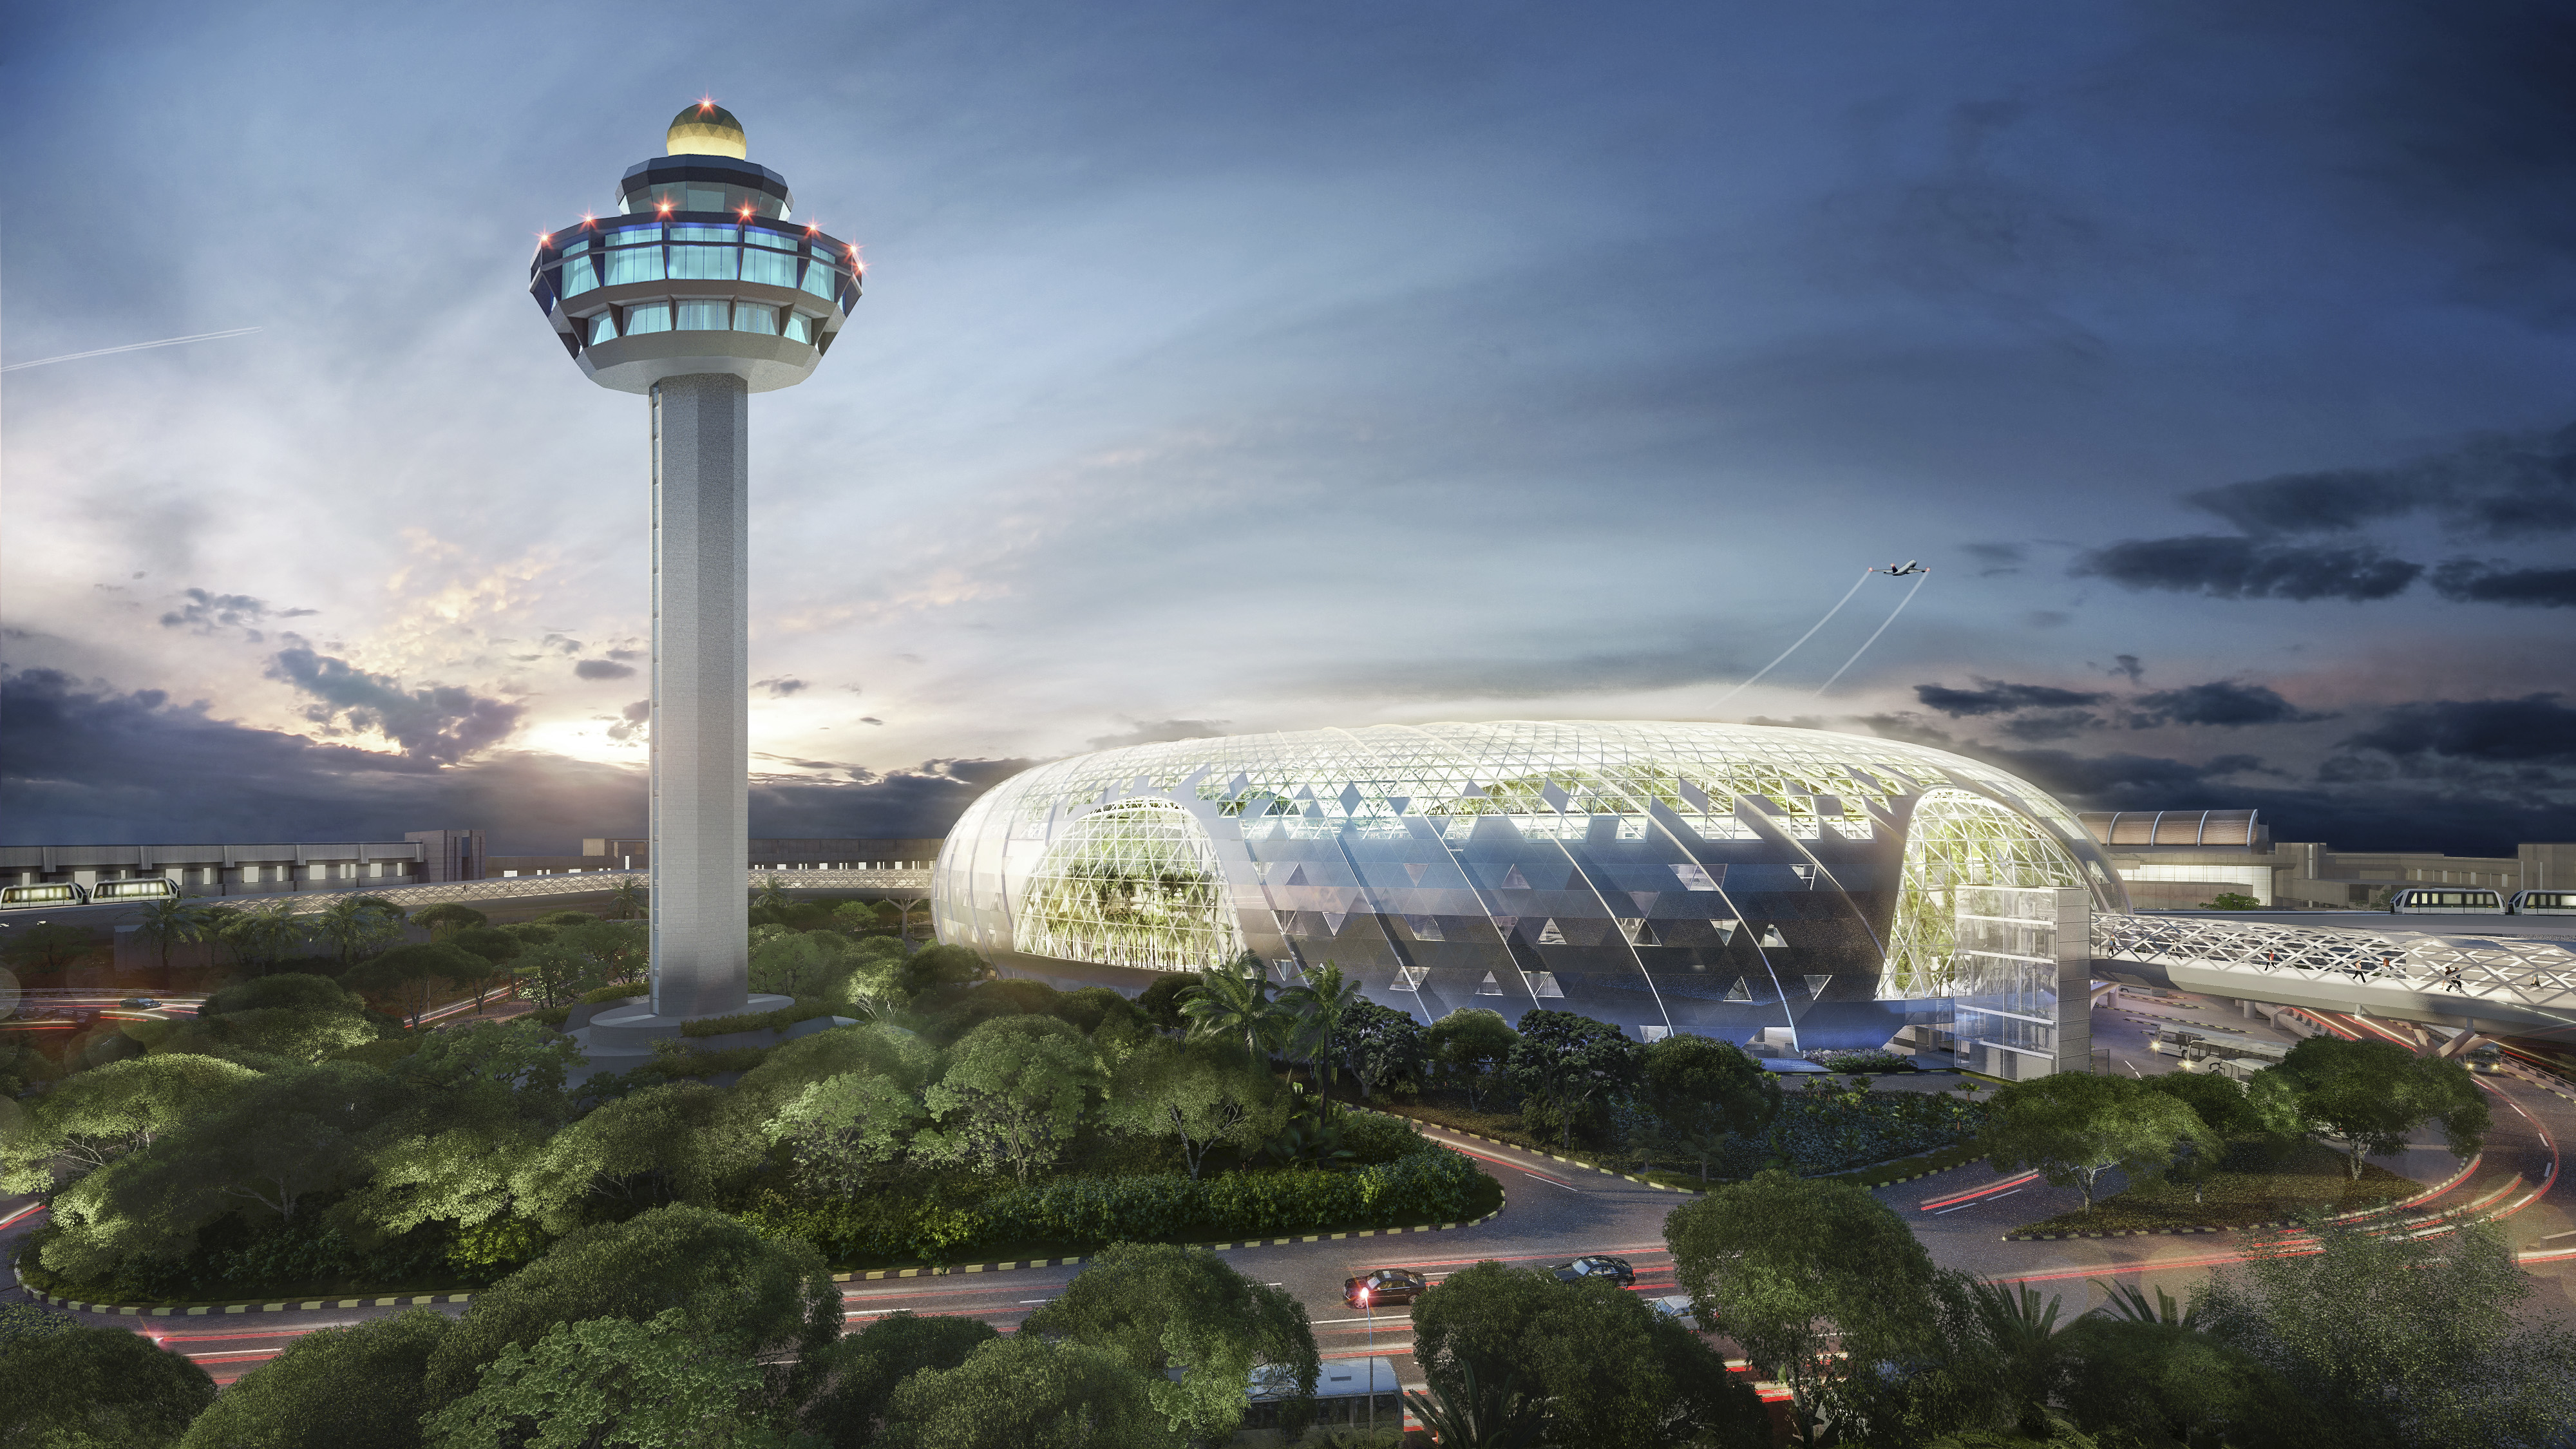 Jewel Changi Airport: More than an Airport